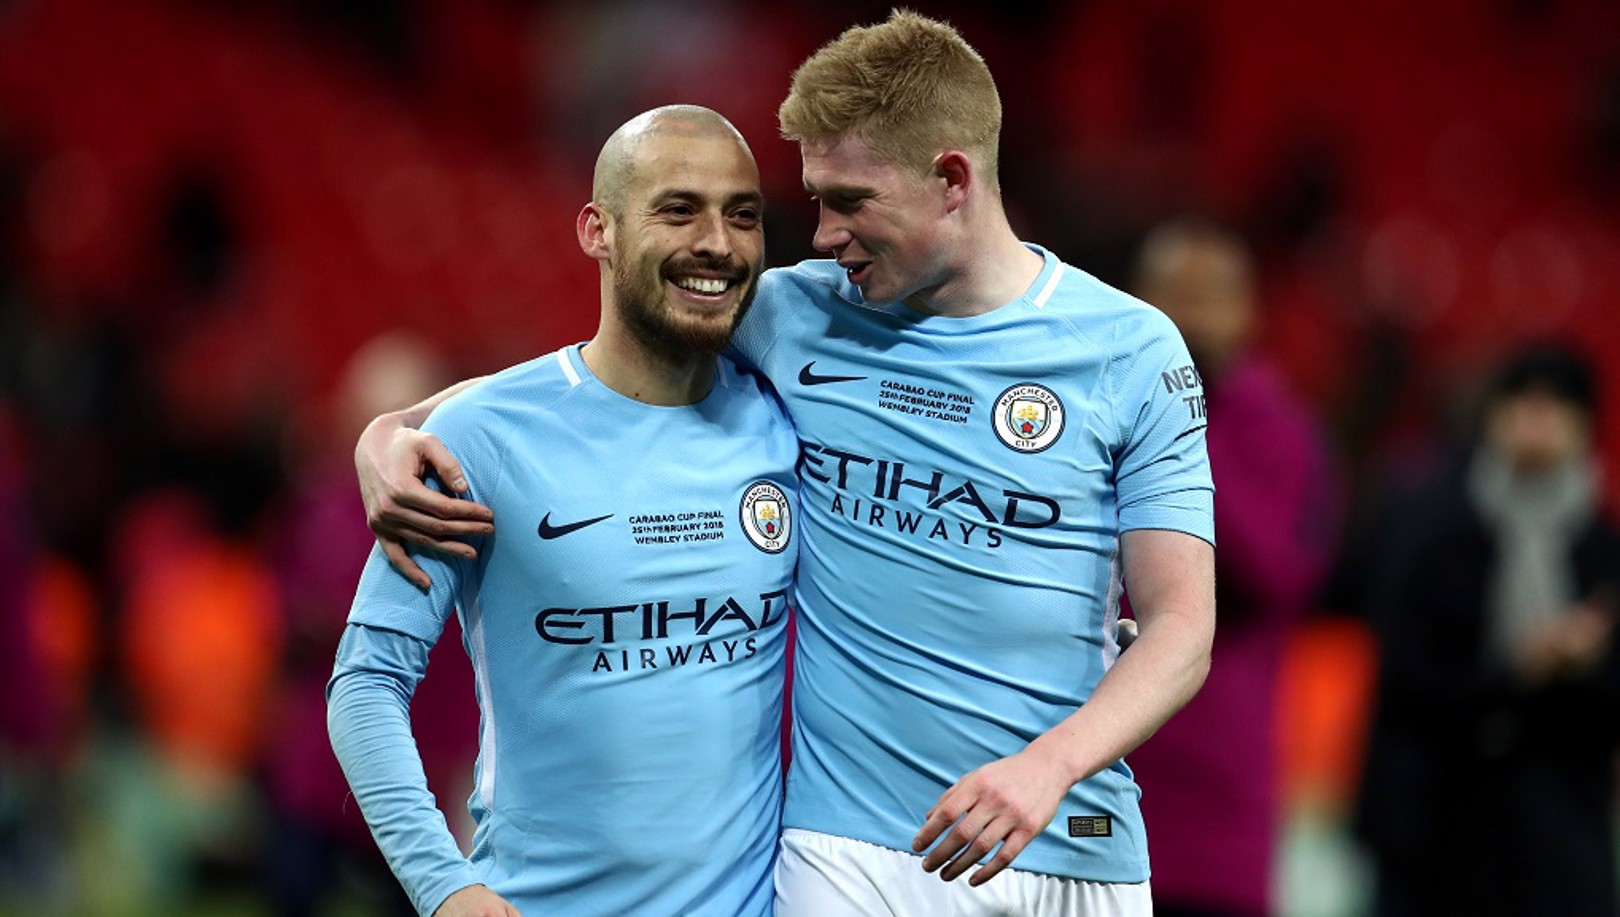 NOMINATED: Along with John Stones, David Silva and KDB are on the UEFA TOY long list